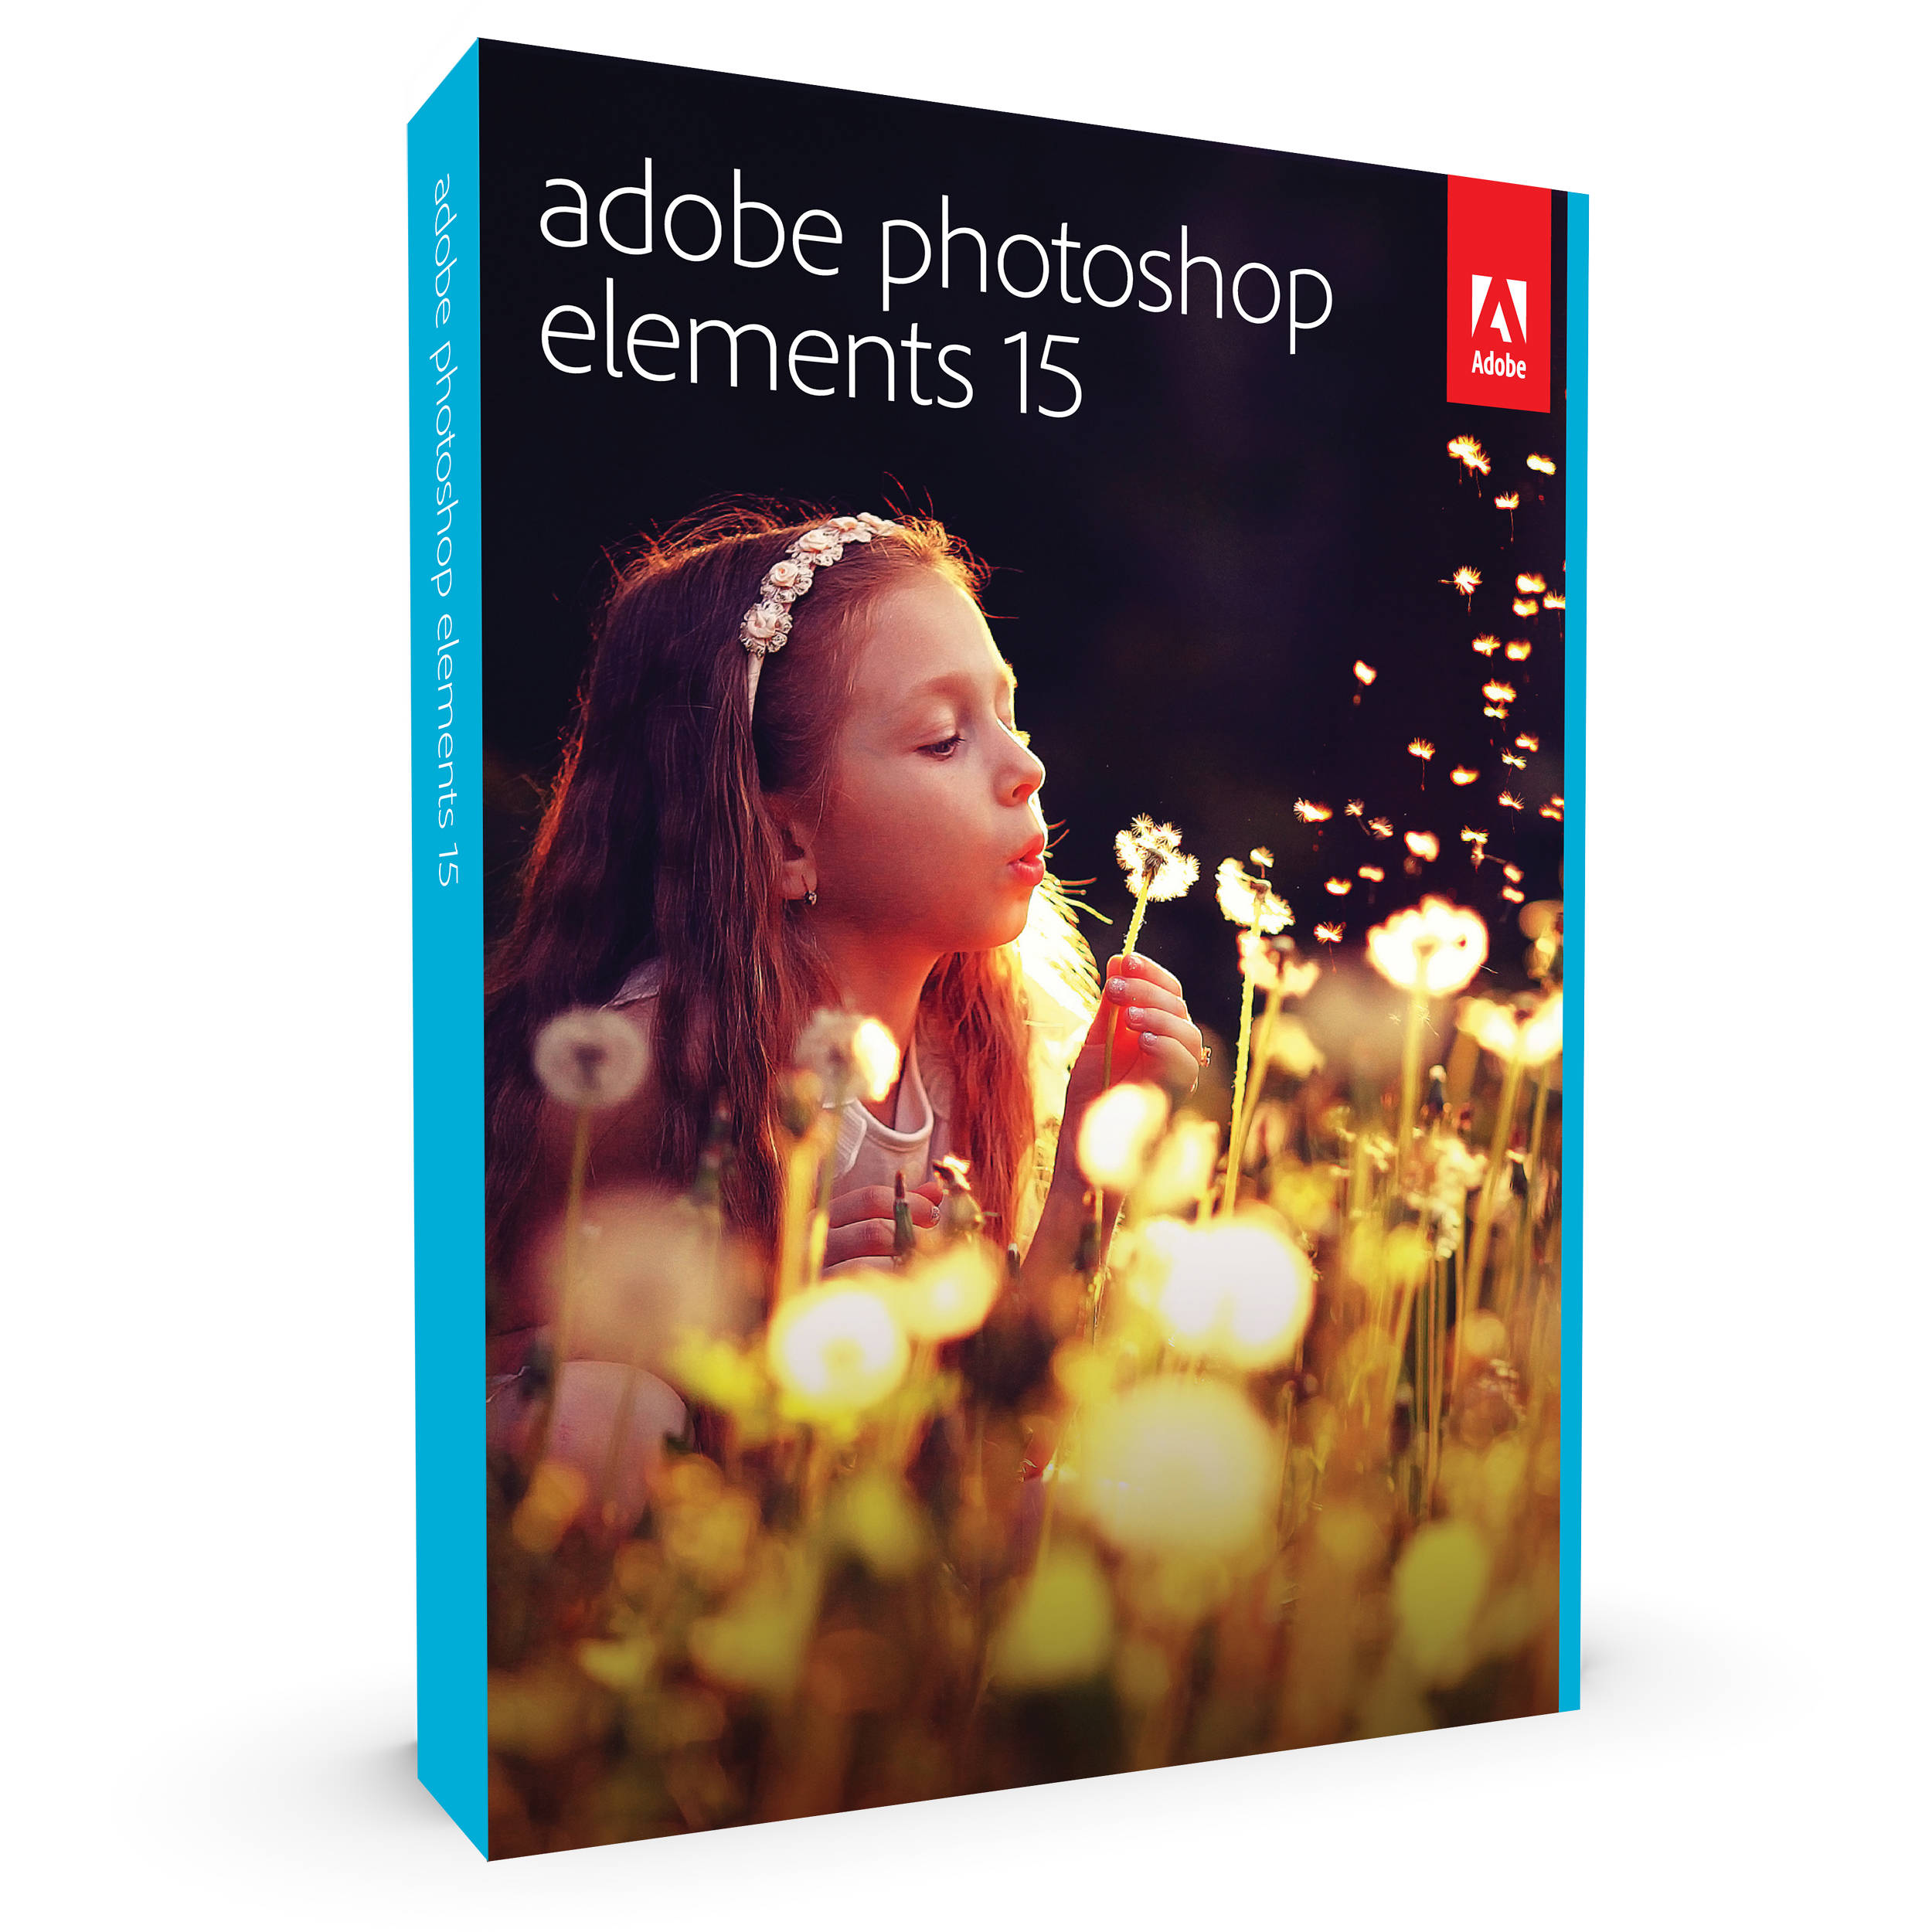 Adobe photoshop elements 15 dvd 65273274 bh photo video adobe photoshop elements 15 dvd baditri Images